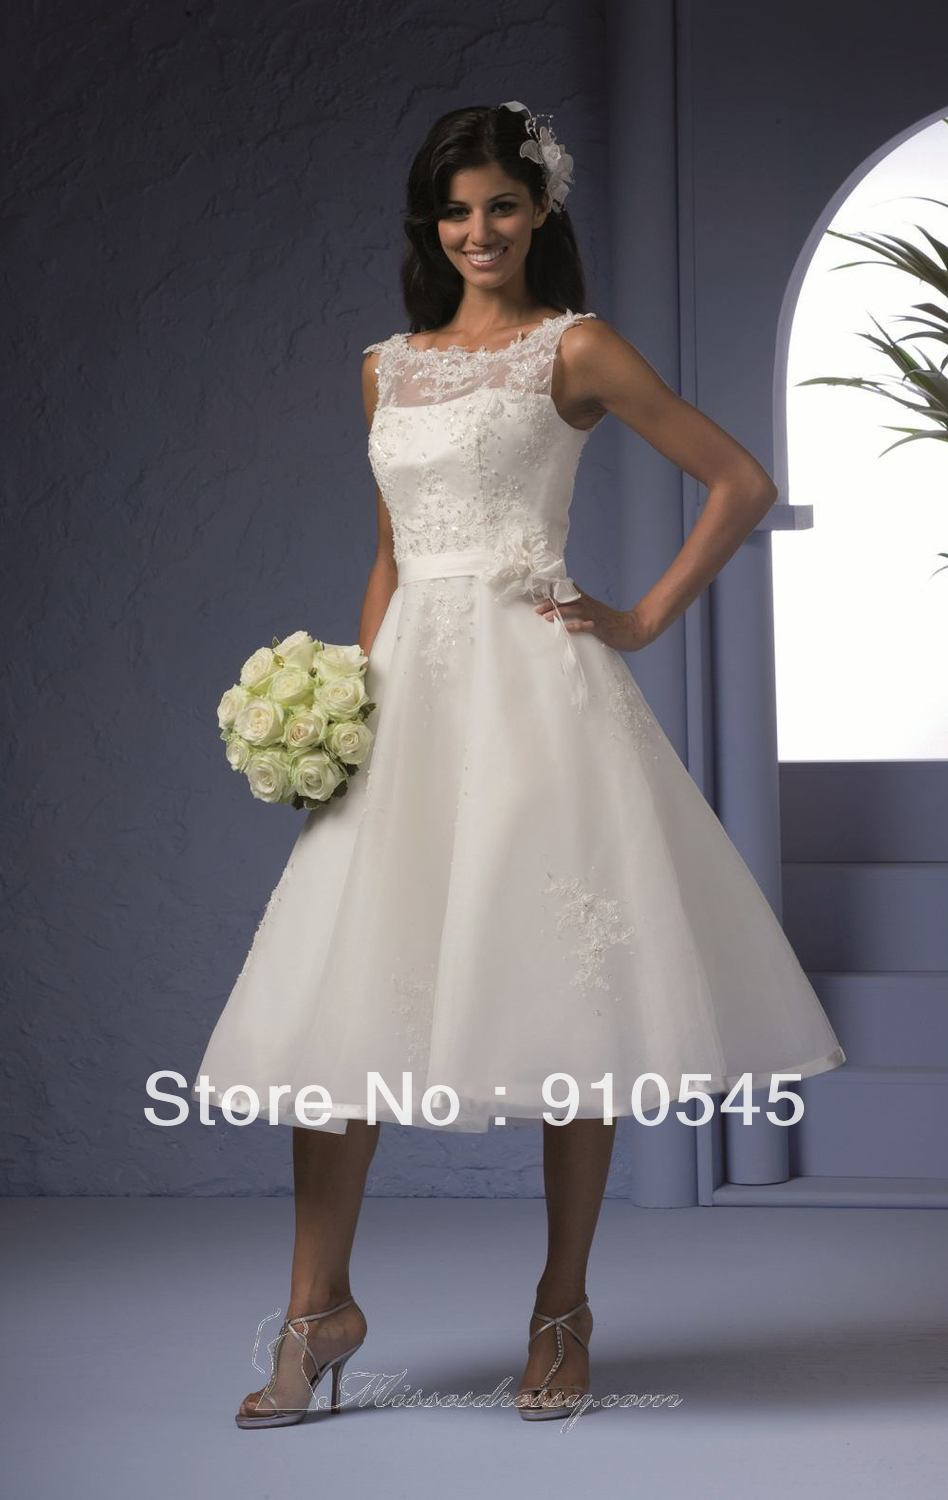 Hot Sell ! A-line Knee Lenght Sleeveless Fashion Short Bridal Dresses 2013 ,Informal Wedding Dress feature Flower on the Belt(China (Mainland))